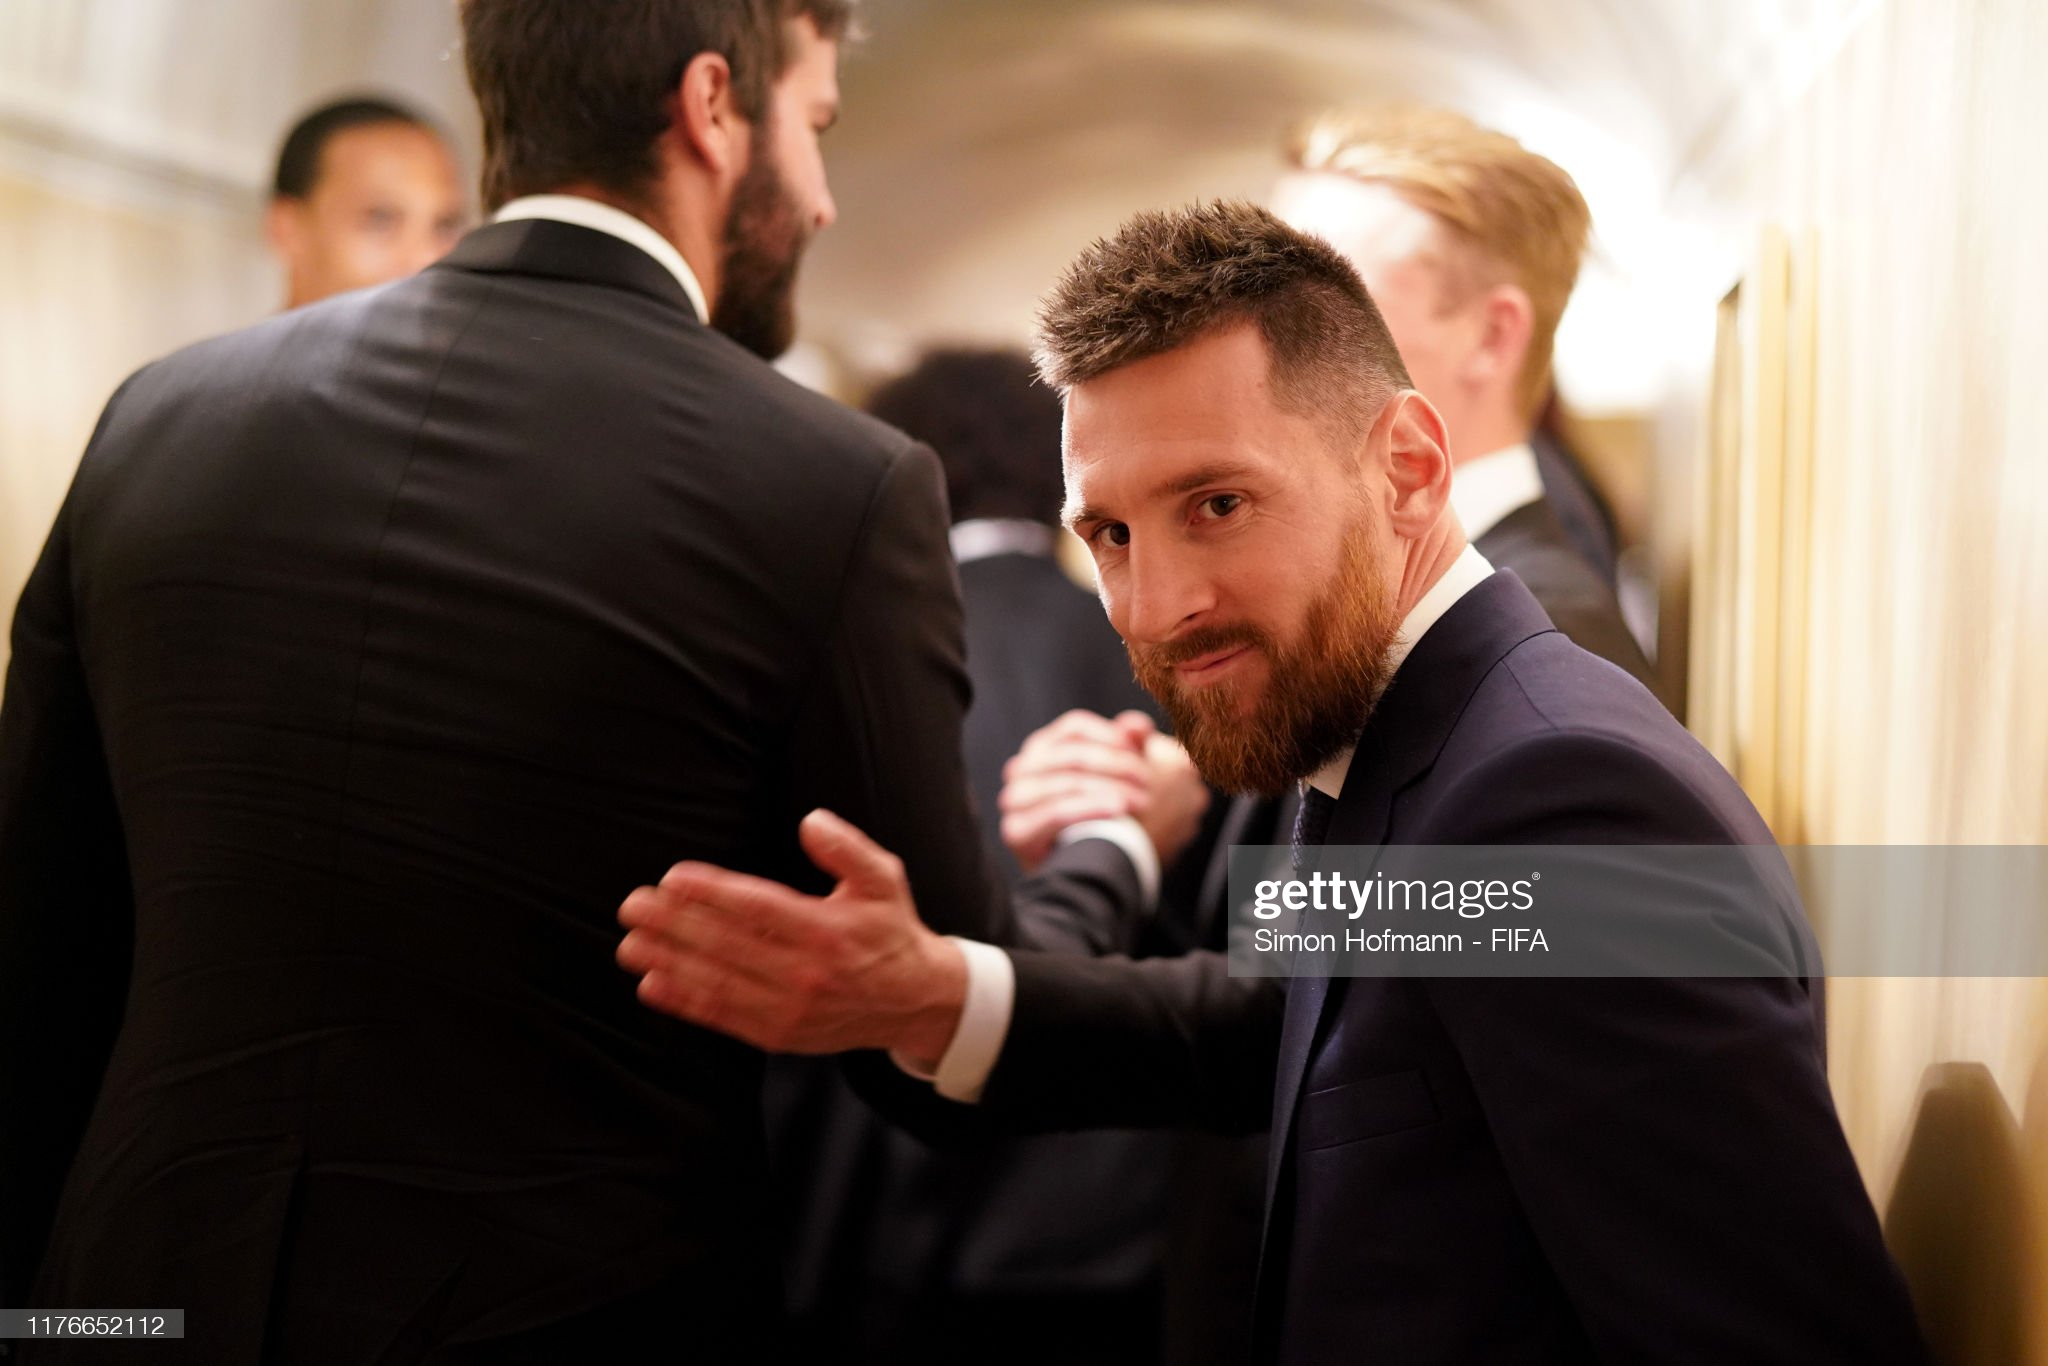 The Best FIFA Football Awards 2019 The-best-fifa-mens-player-award-and-the-fifa-fifpro-mens-world11-picture-id1176652112?s=2048x2048